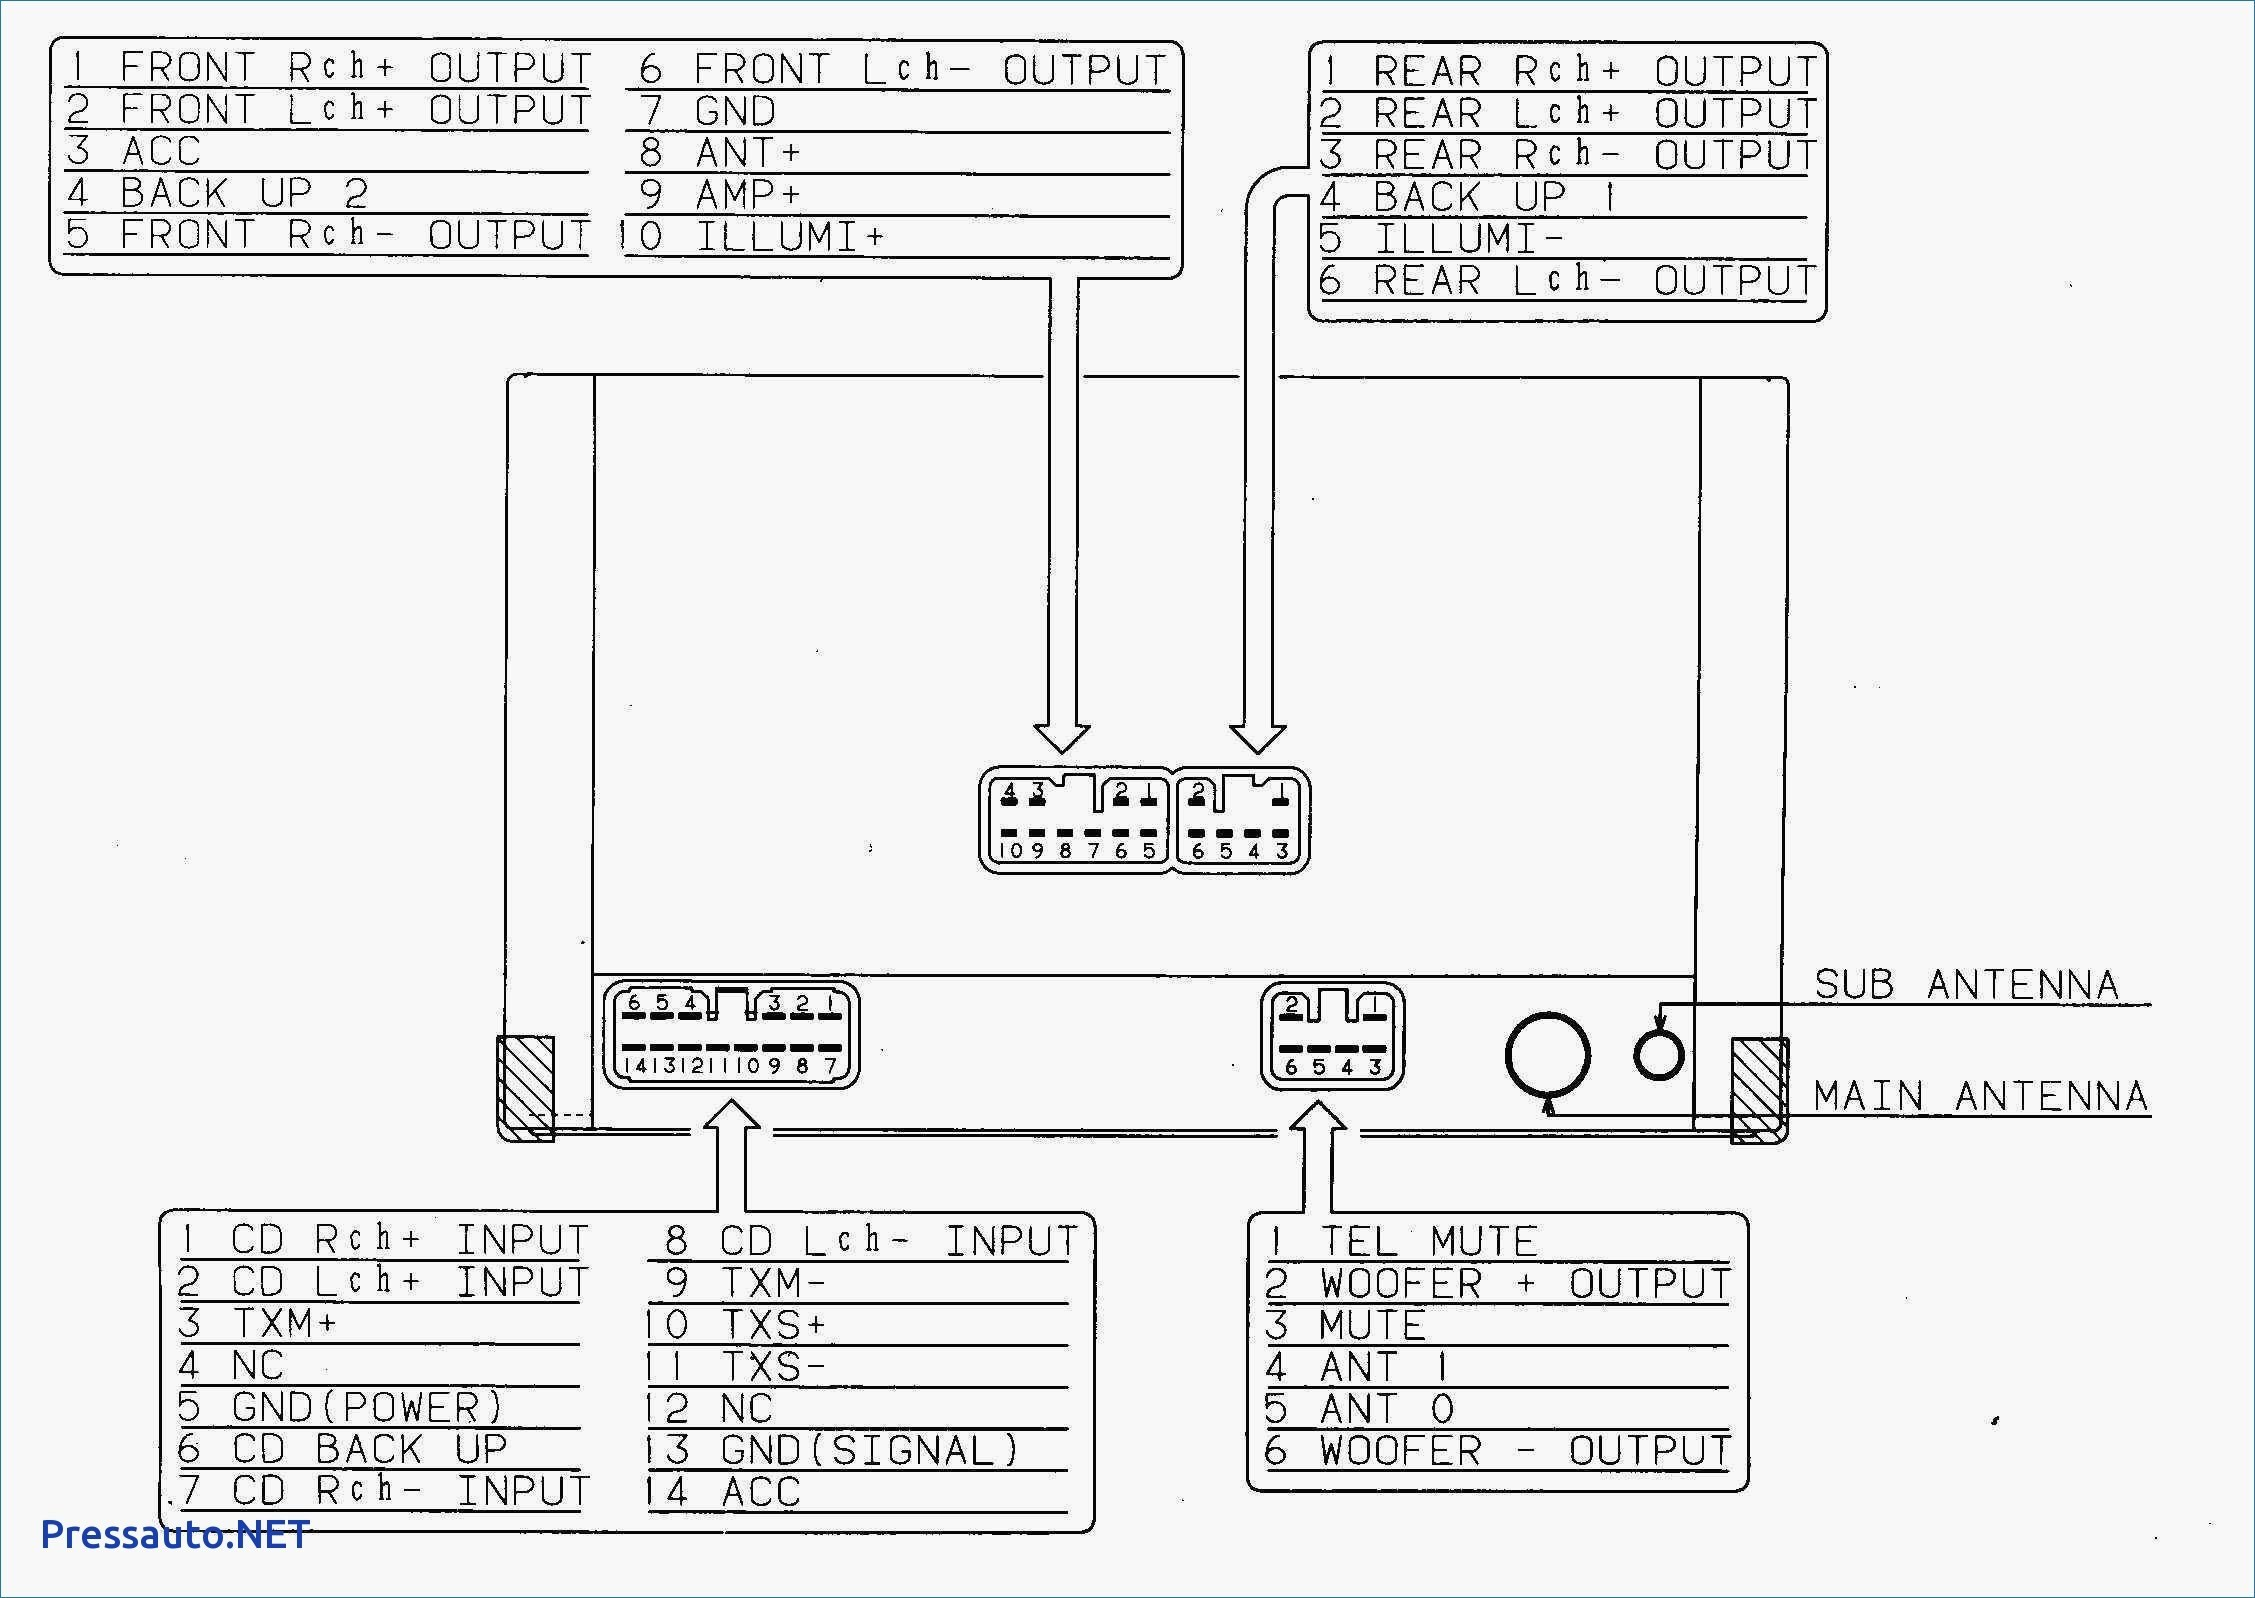 Car Radio Circuit Diagram Best Speaker Wiring Diagram Diagram Of Car Radio Circuit Diagram